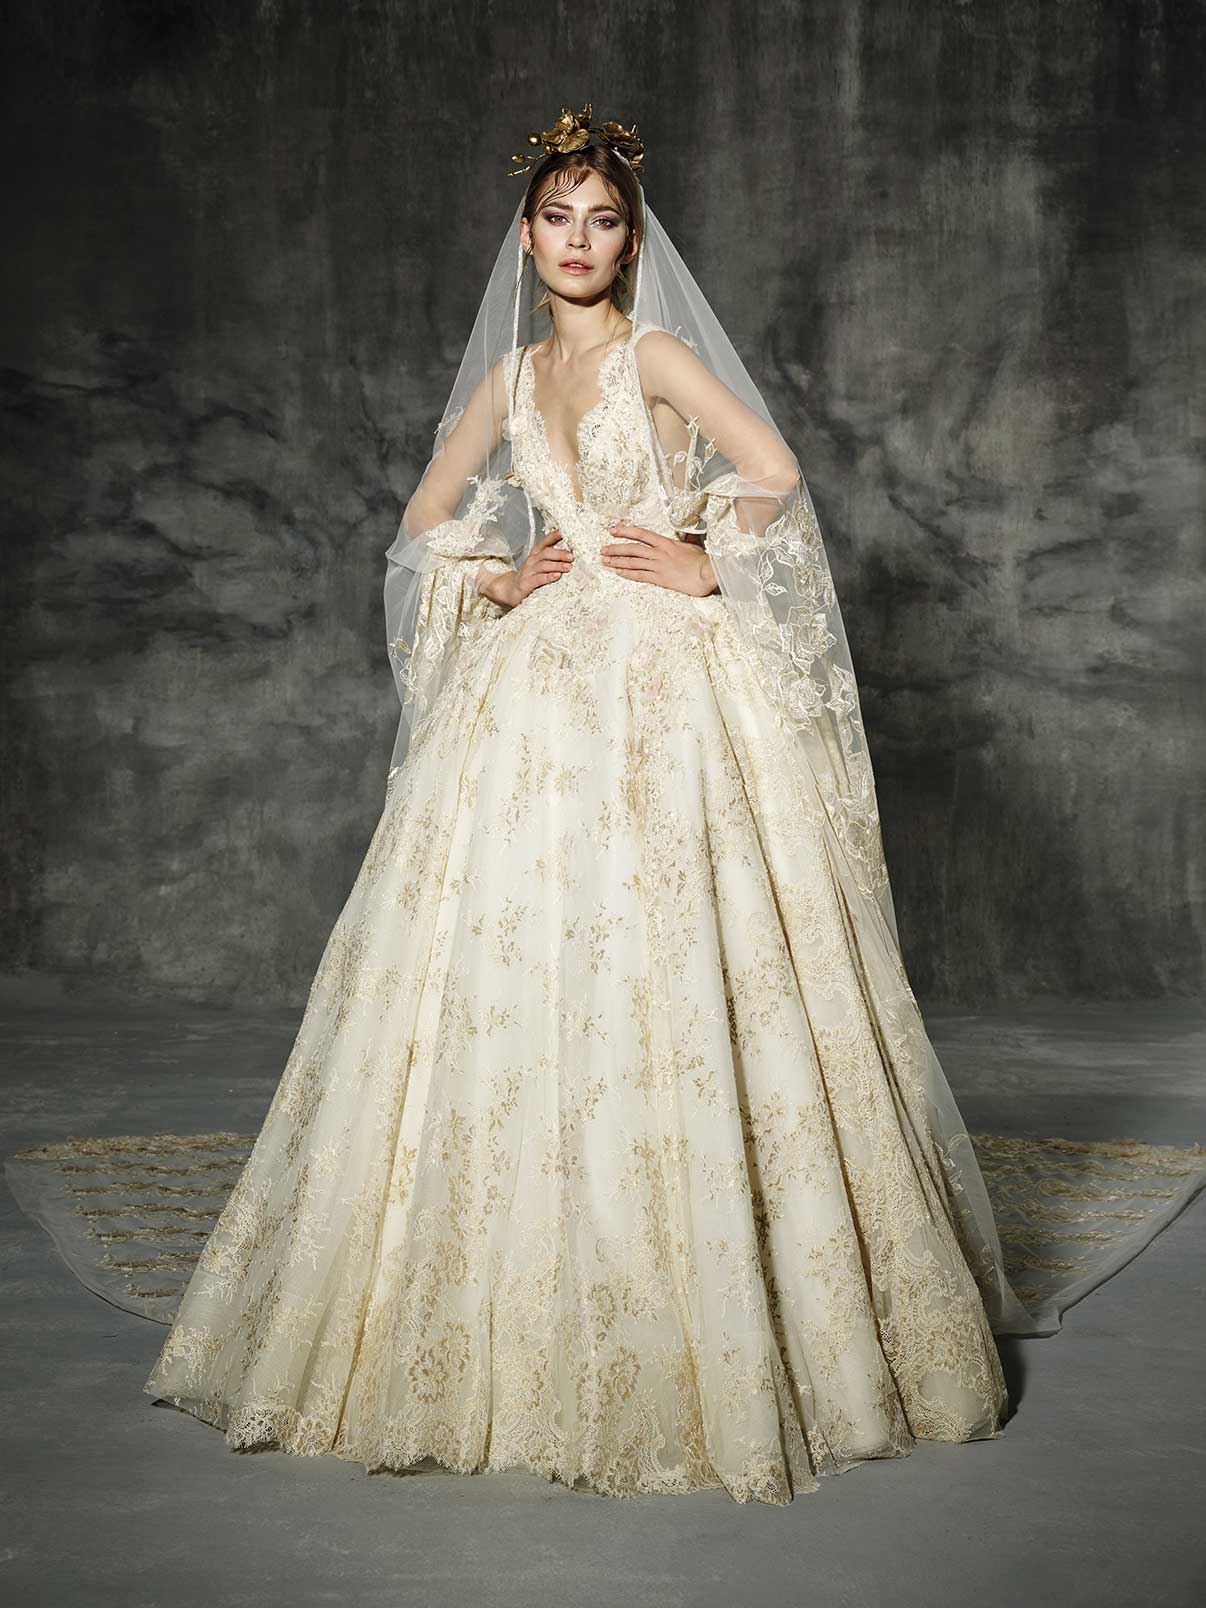 Vintage Wedding Dress - Yolan Cris Llunas Wedding Dress